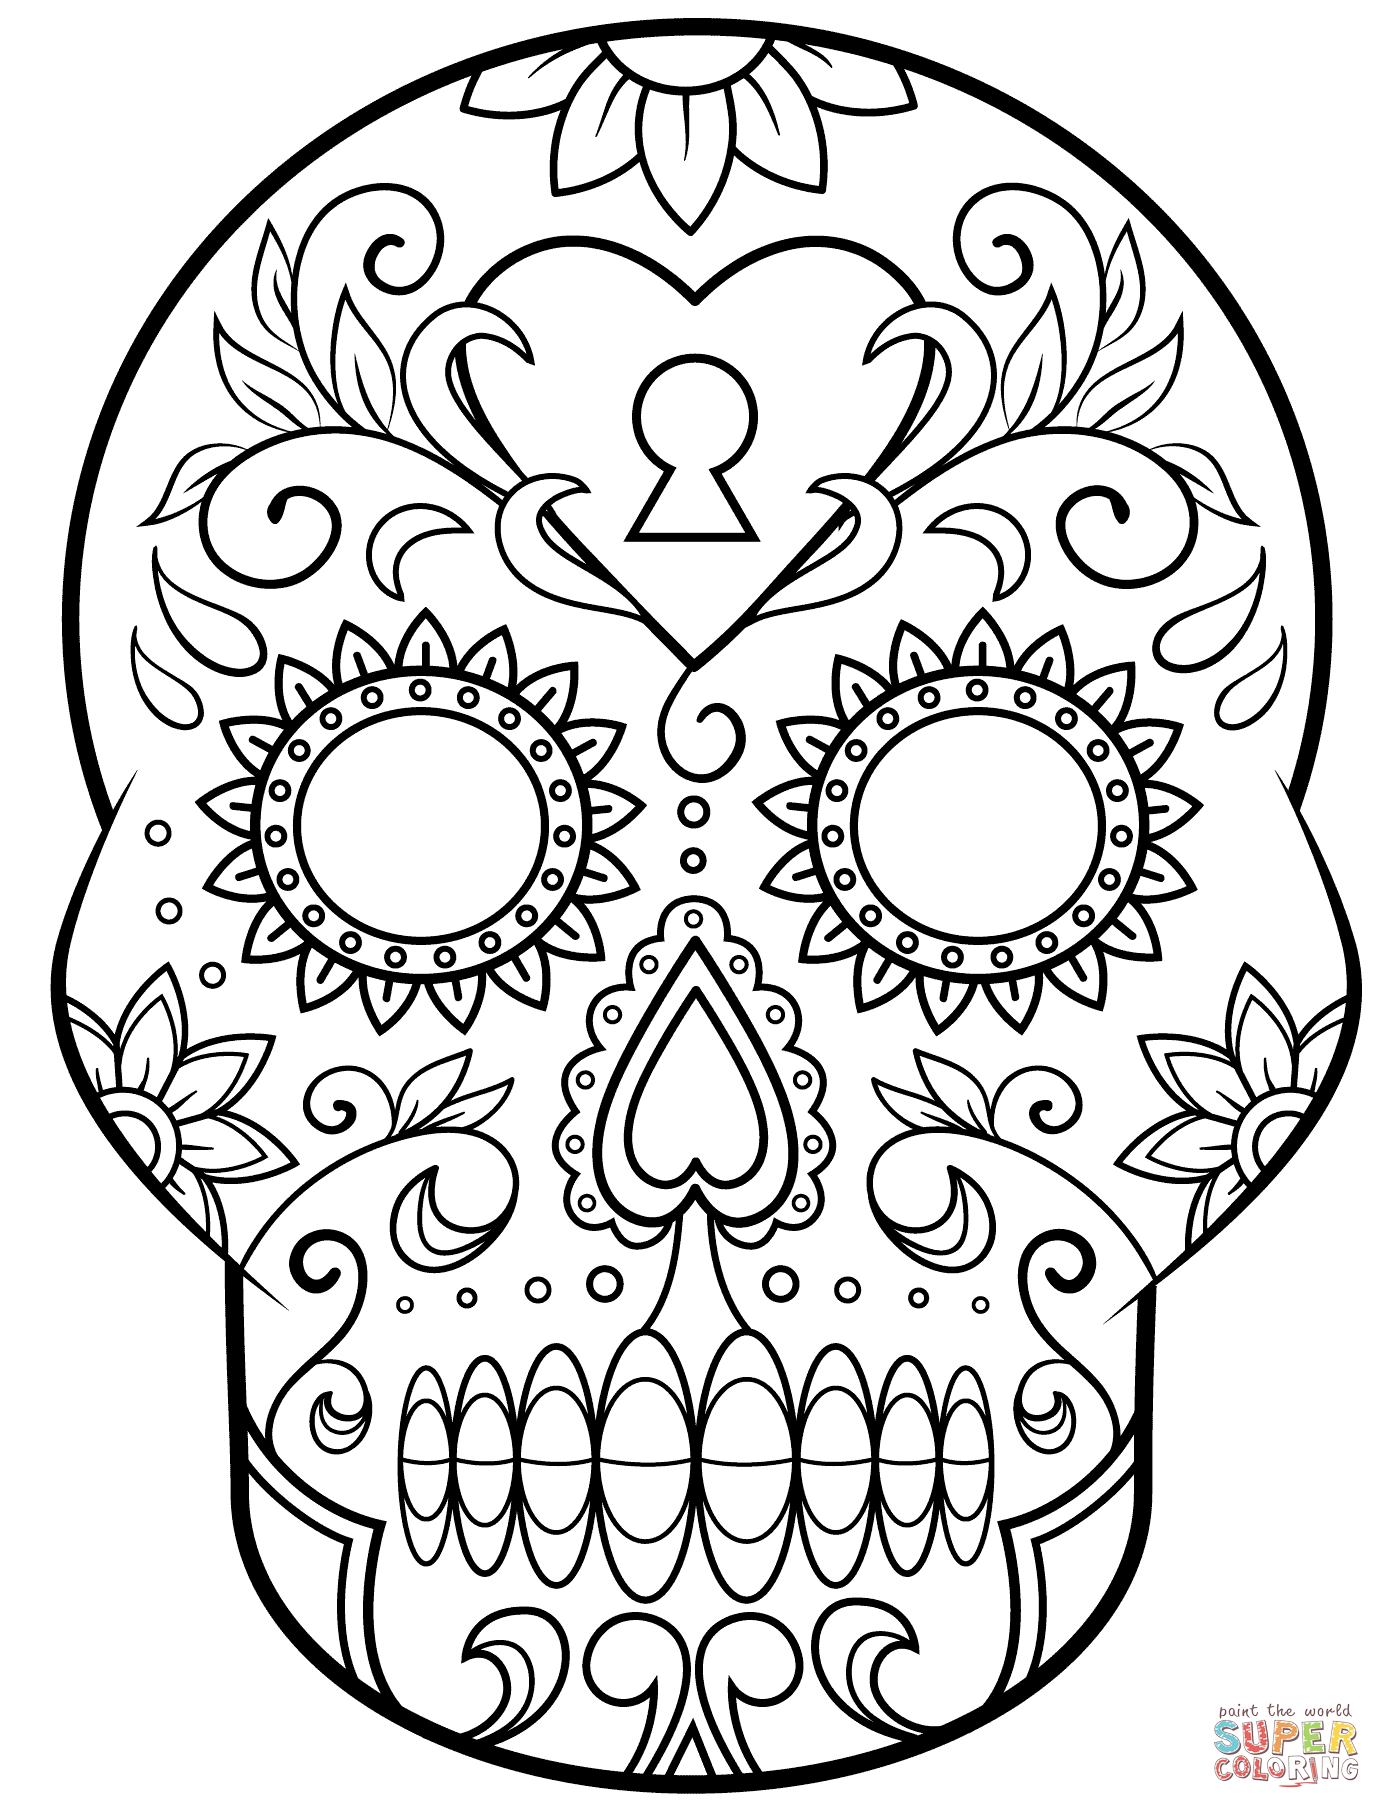 day of the dead skull coloring pages Day of the Dead Sugar Skull coloring page | Free Printable  day of the dead skull coloring pages